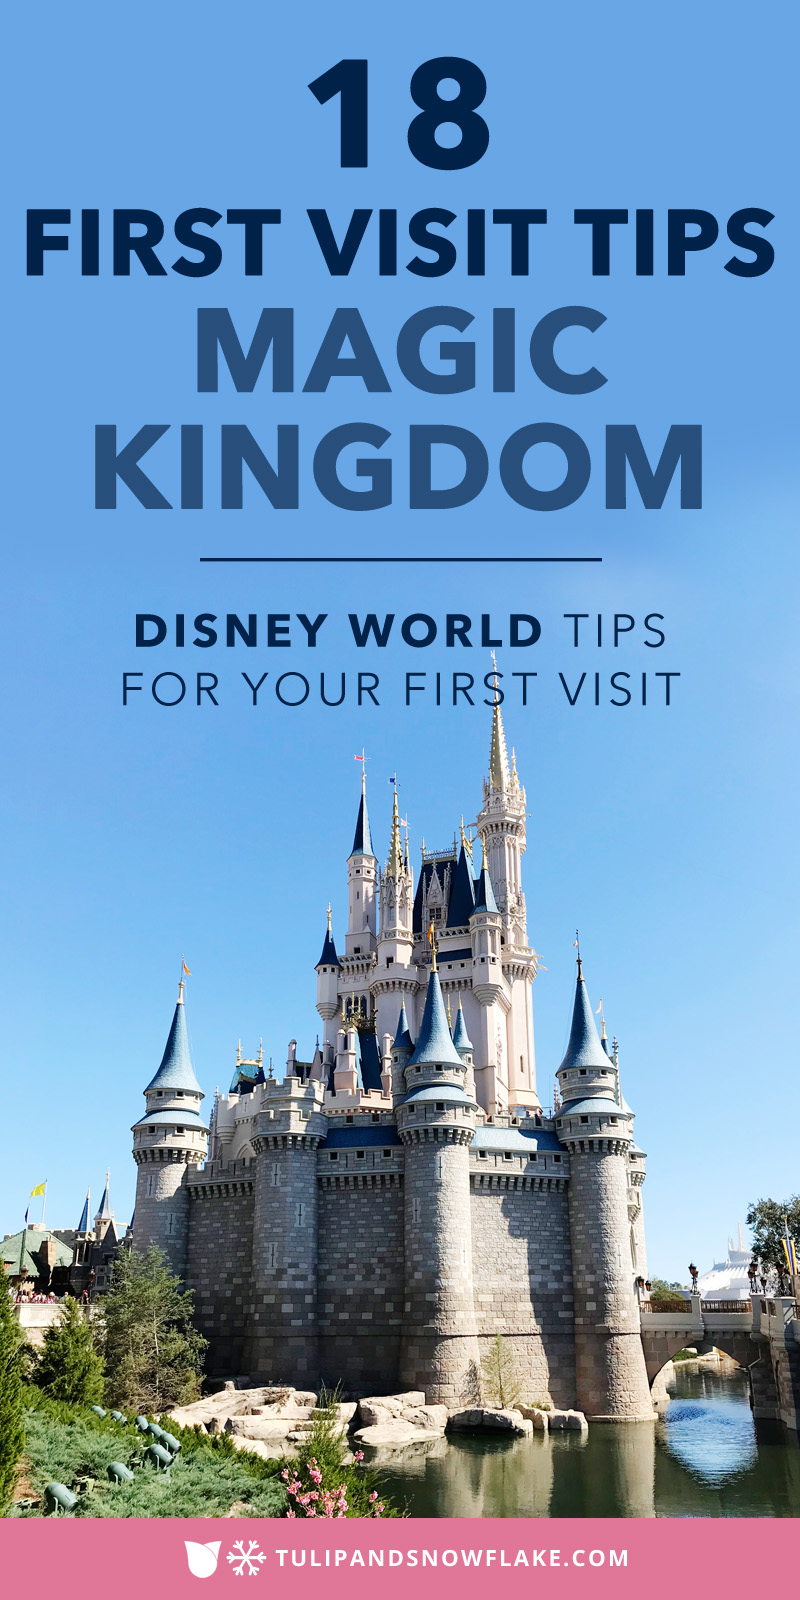 18 First Visit Tips Magic Kingdom